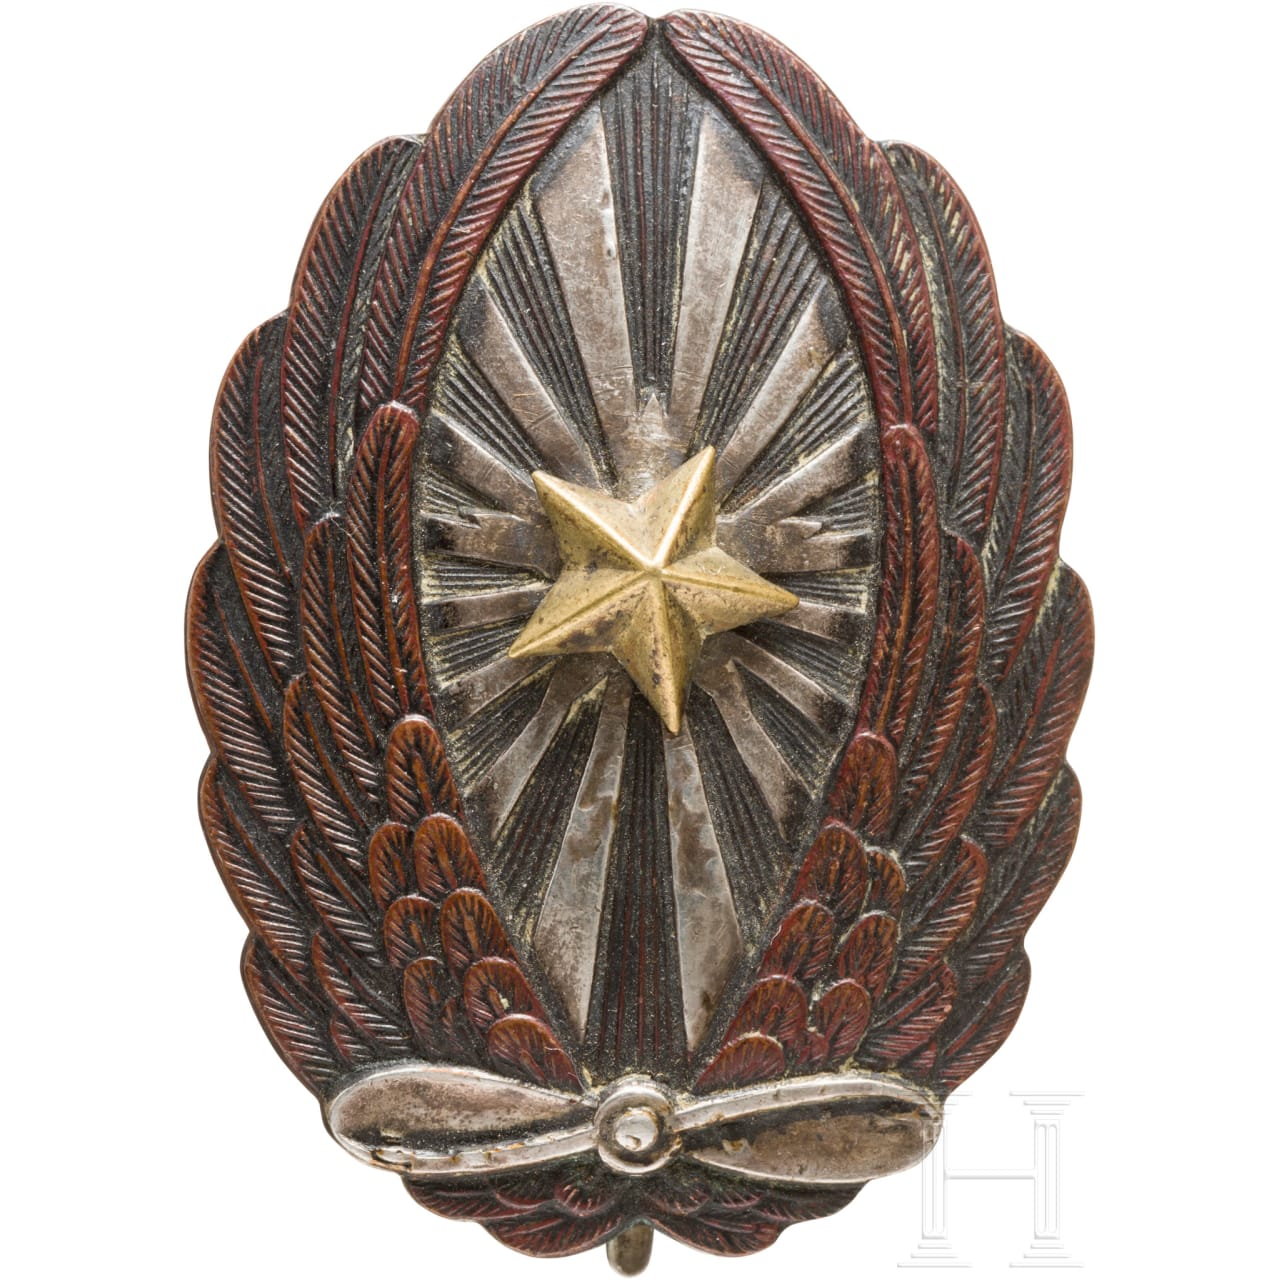 Flight badge for NCO´s of the army, 2nd world war